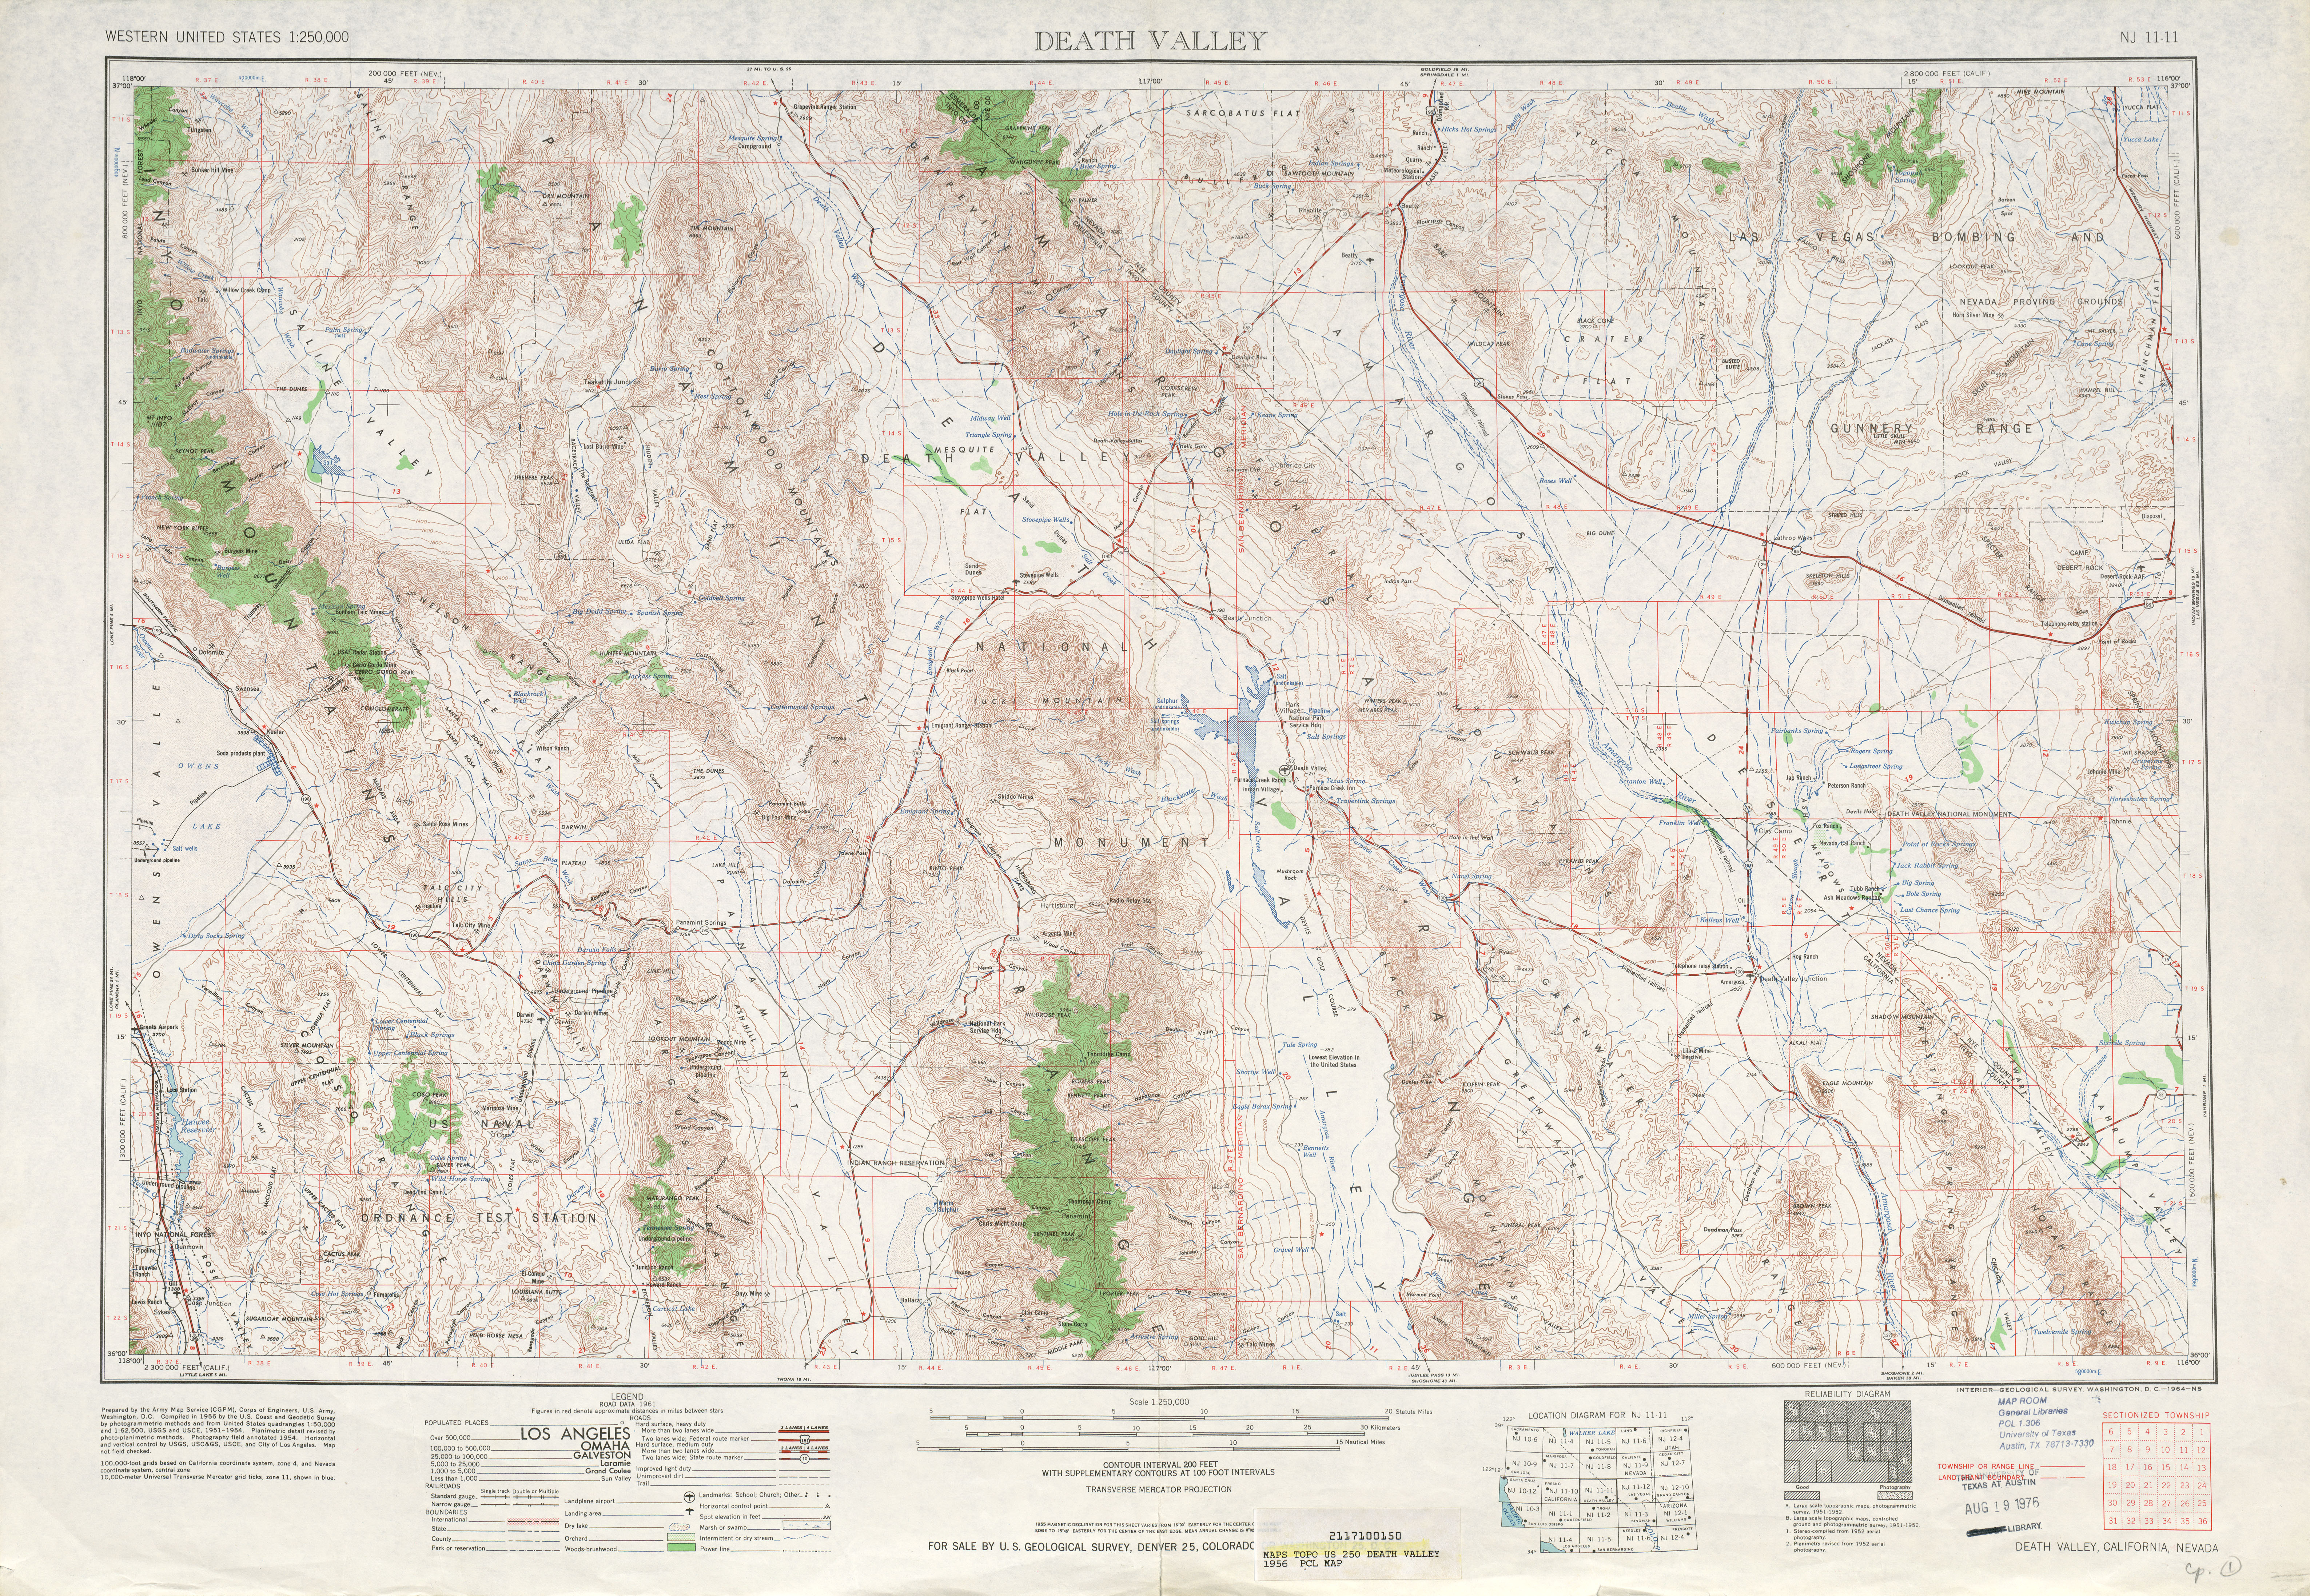 United States Map With Death Valley Death Valley Topographic Map